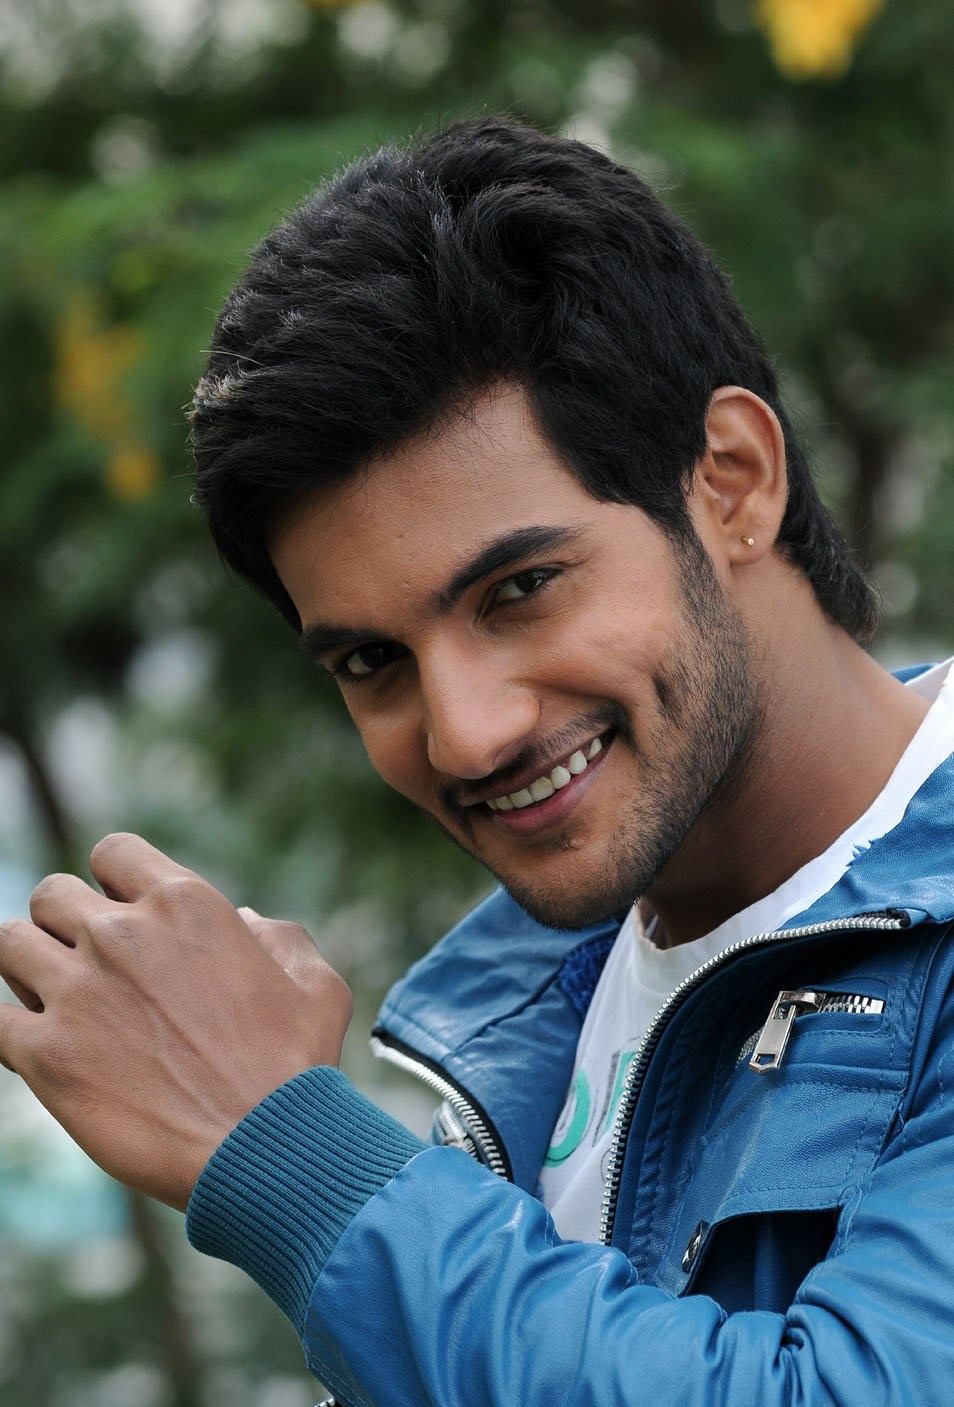 aadi pudipeddi wikiaadi pudipeddi wife, aadi pudipeddi wiki, aadi pudipeddi, aadi pudipeddi engagement, aadi pudipeddi marriage, aadi pudipeddi height, aadi pudipeddi age, aadi pudipeddi twitter, aadi pudipeddi facebook, aadi pudipeddi date of birth, aadi pudipeddi wife pregnant, aadi pudipeddi wedding, aadi pudipeddi rough movie